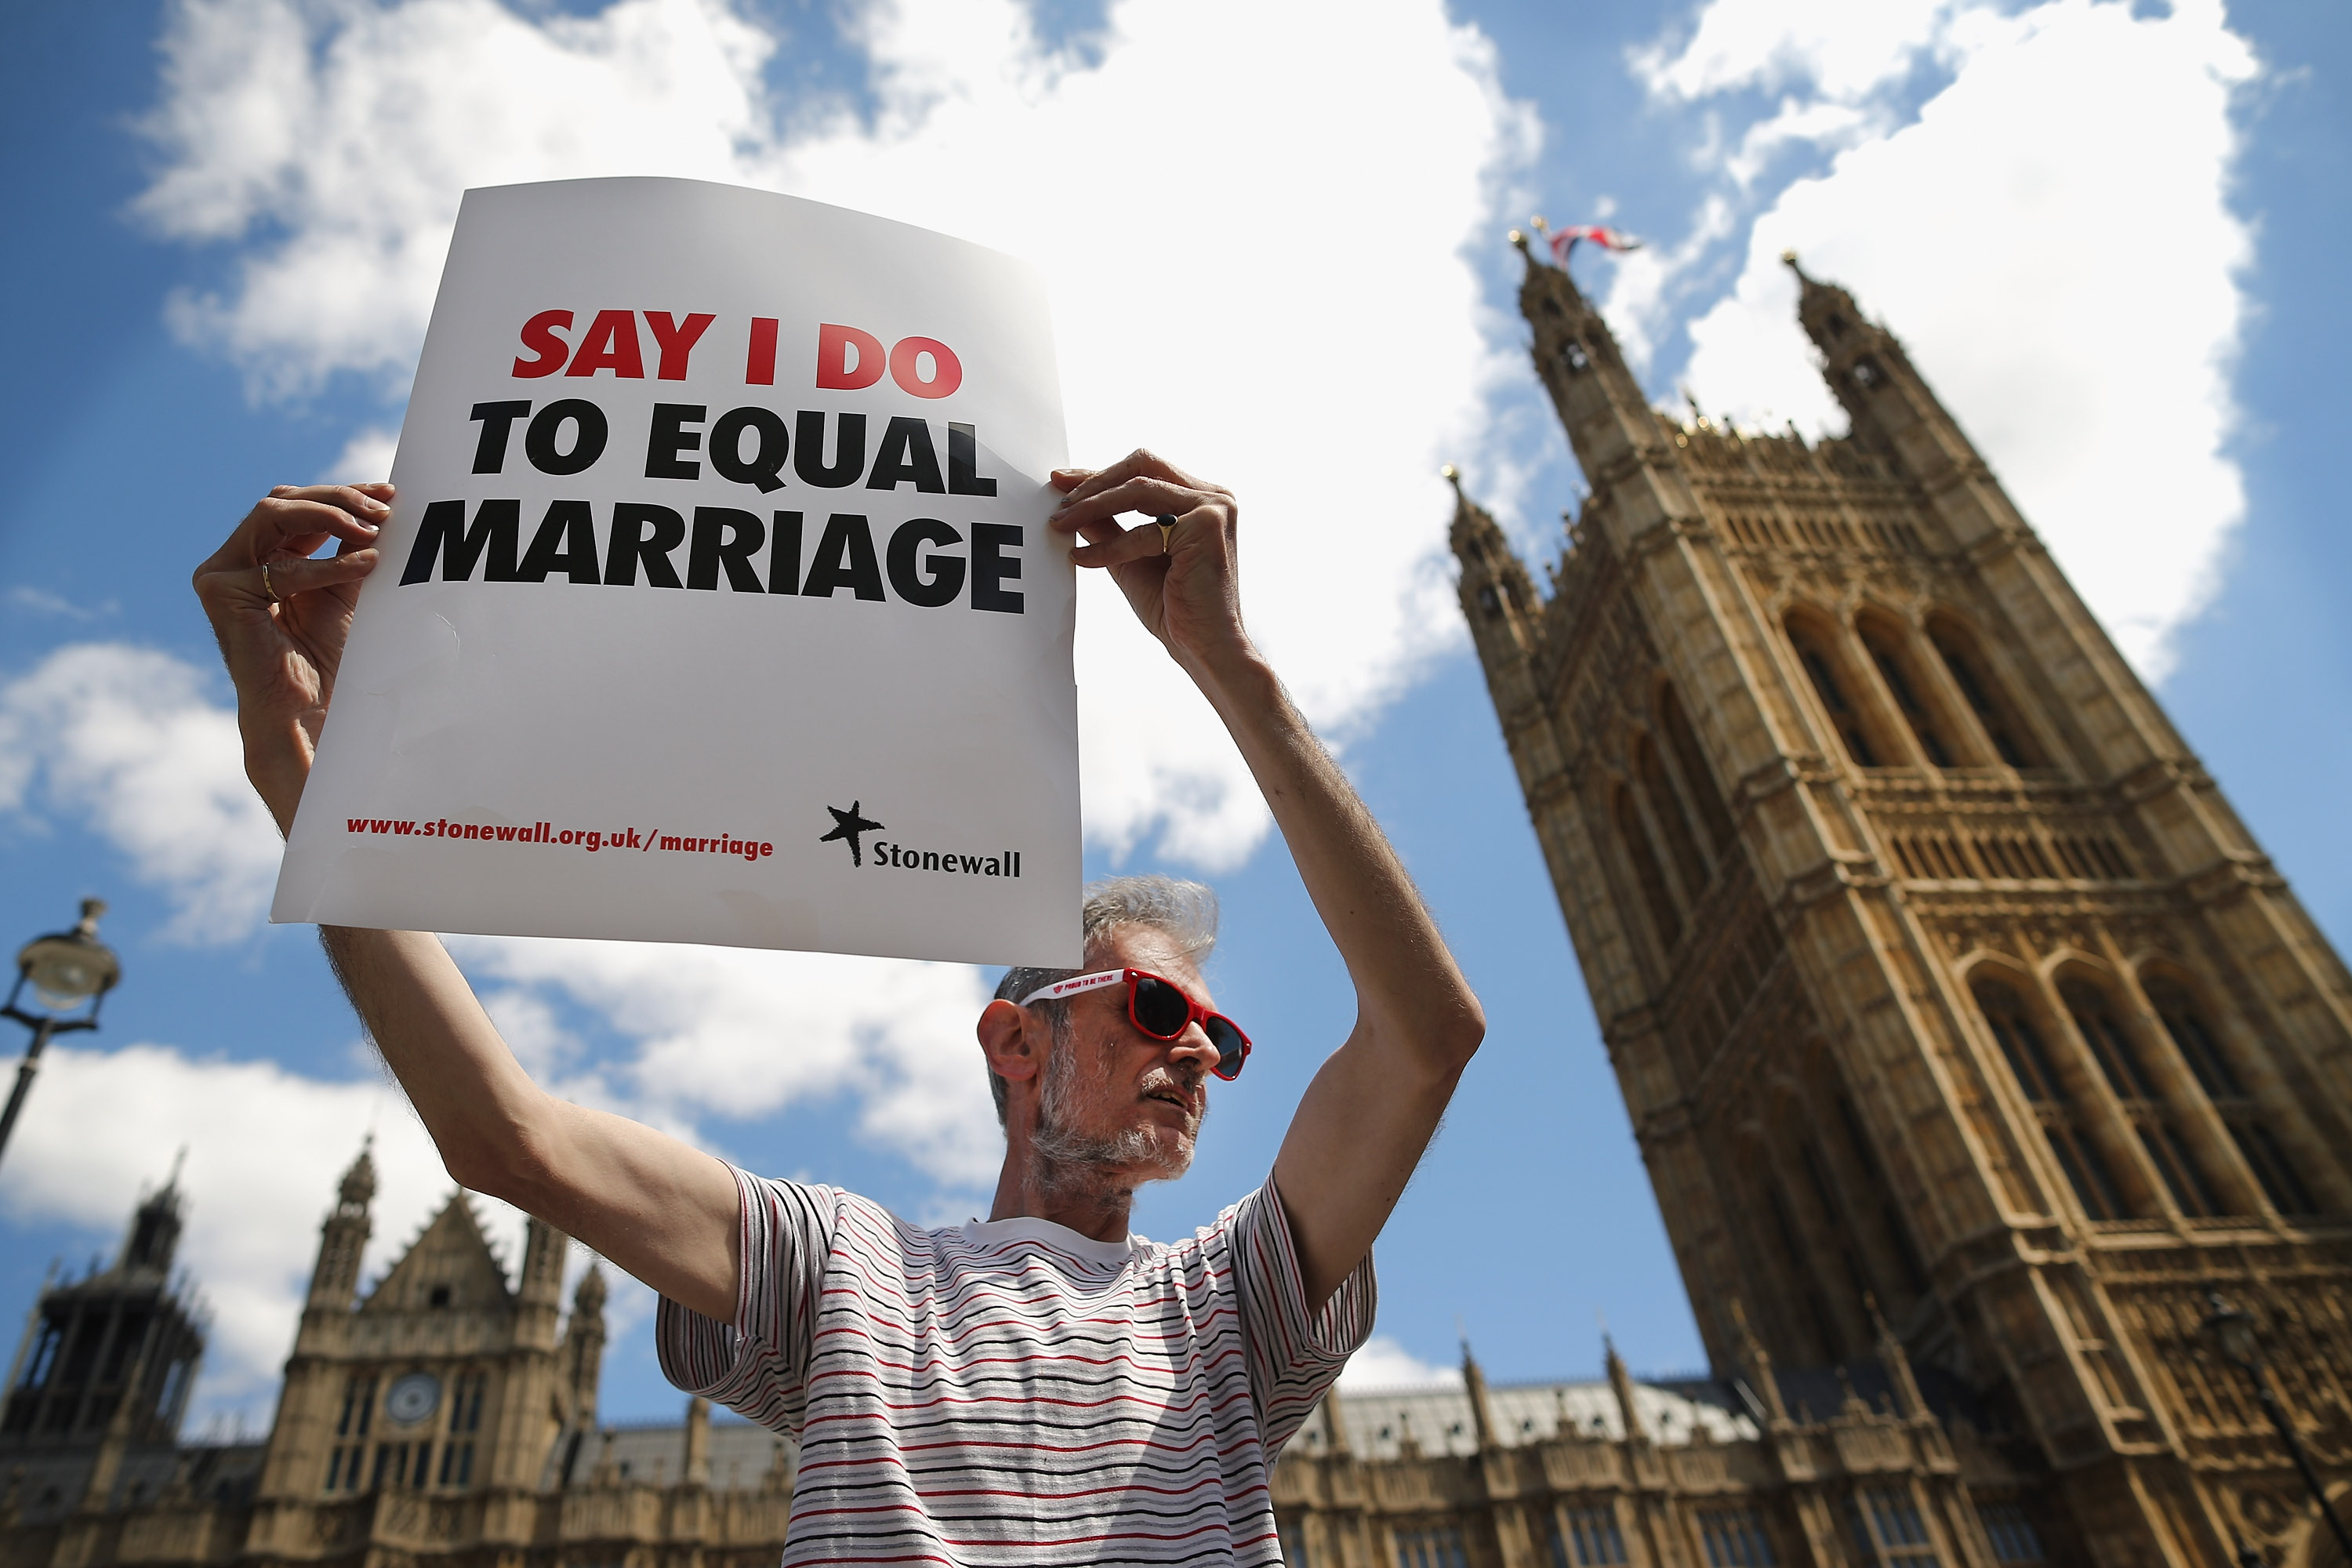 A proponent of same-sex marriage protests outside the Houses of Parliament, 3 June 2013. (Photo by Dan Kitwood/Getty Images)